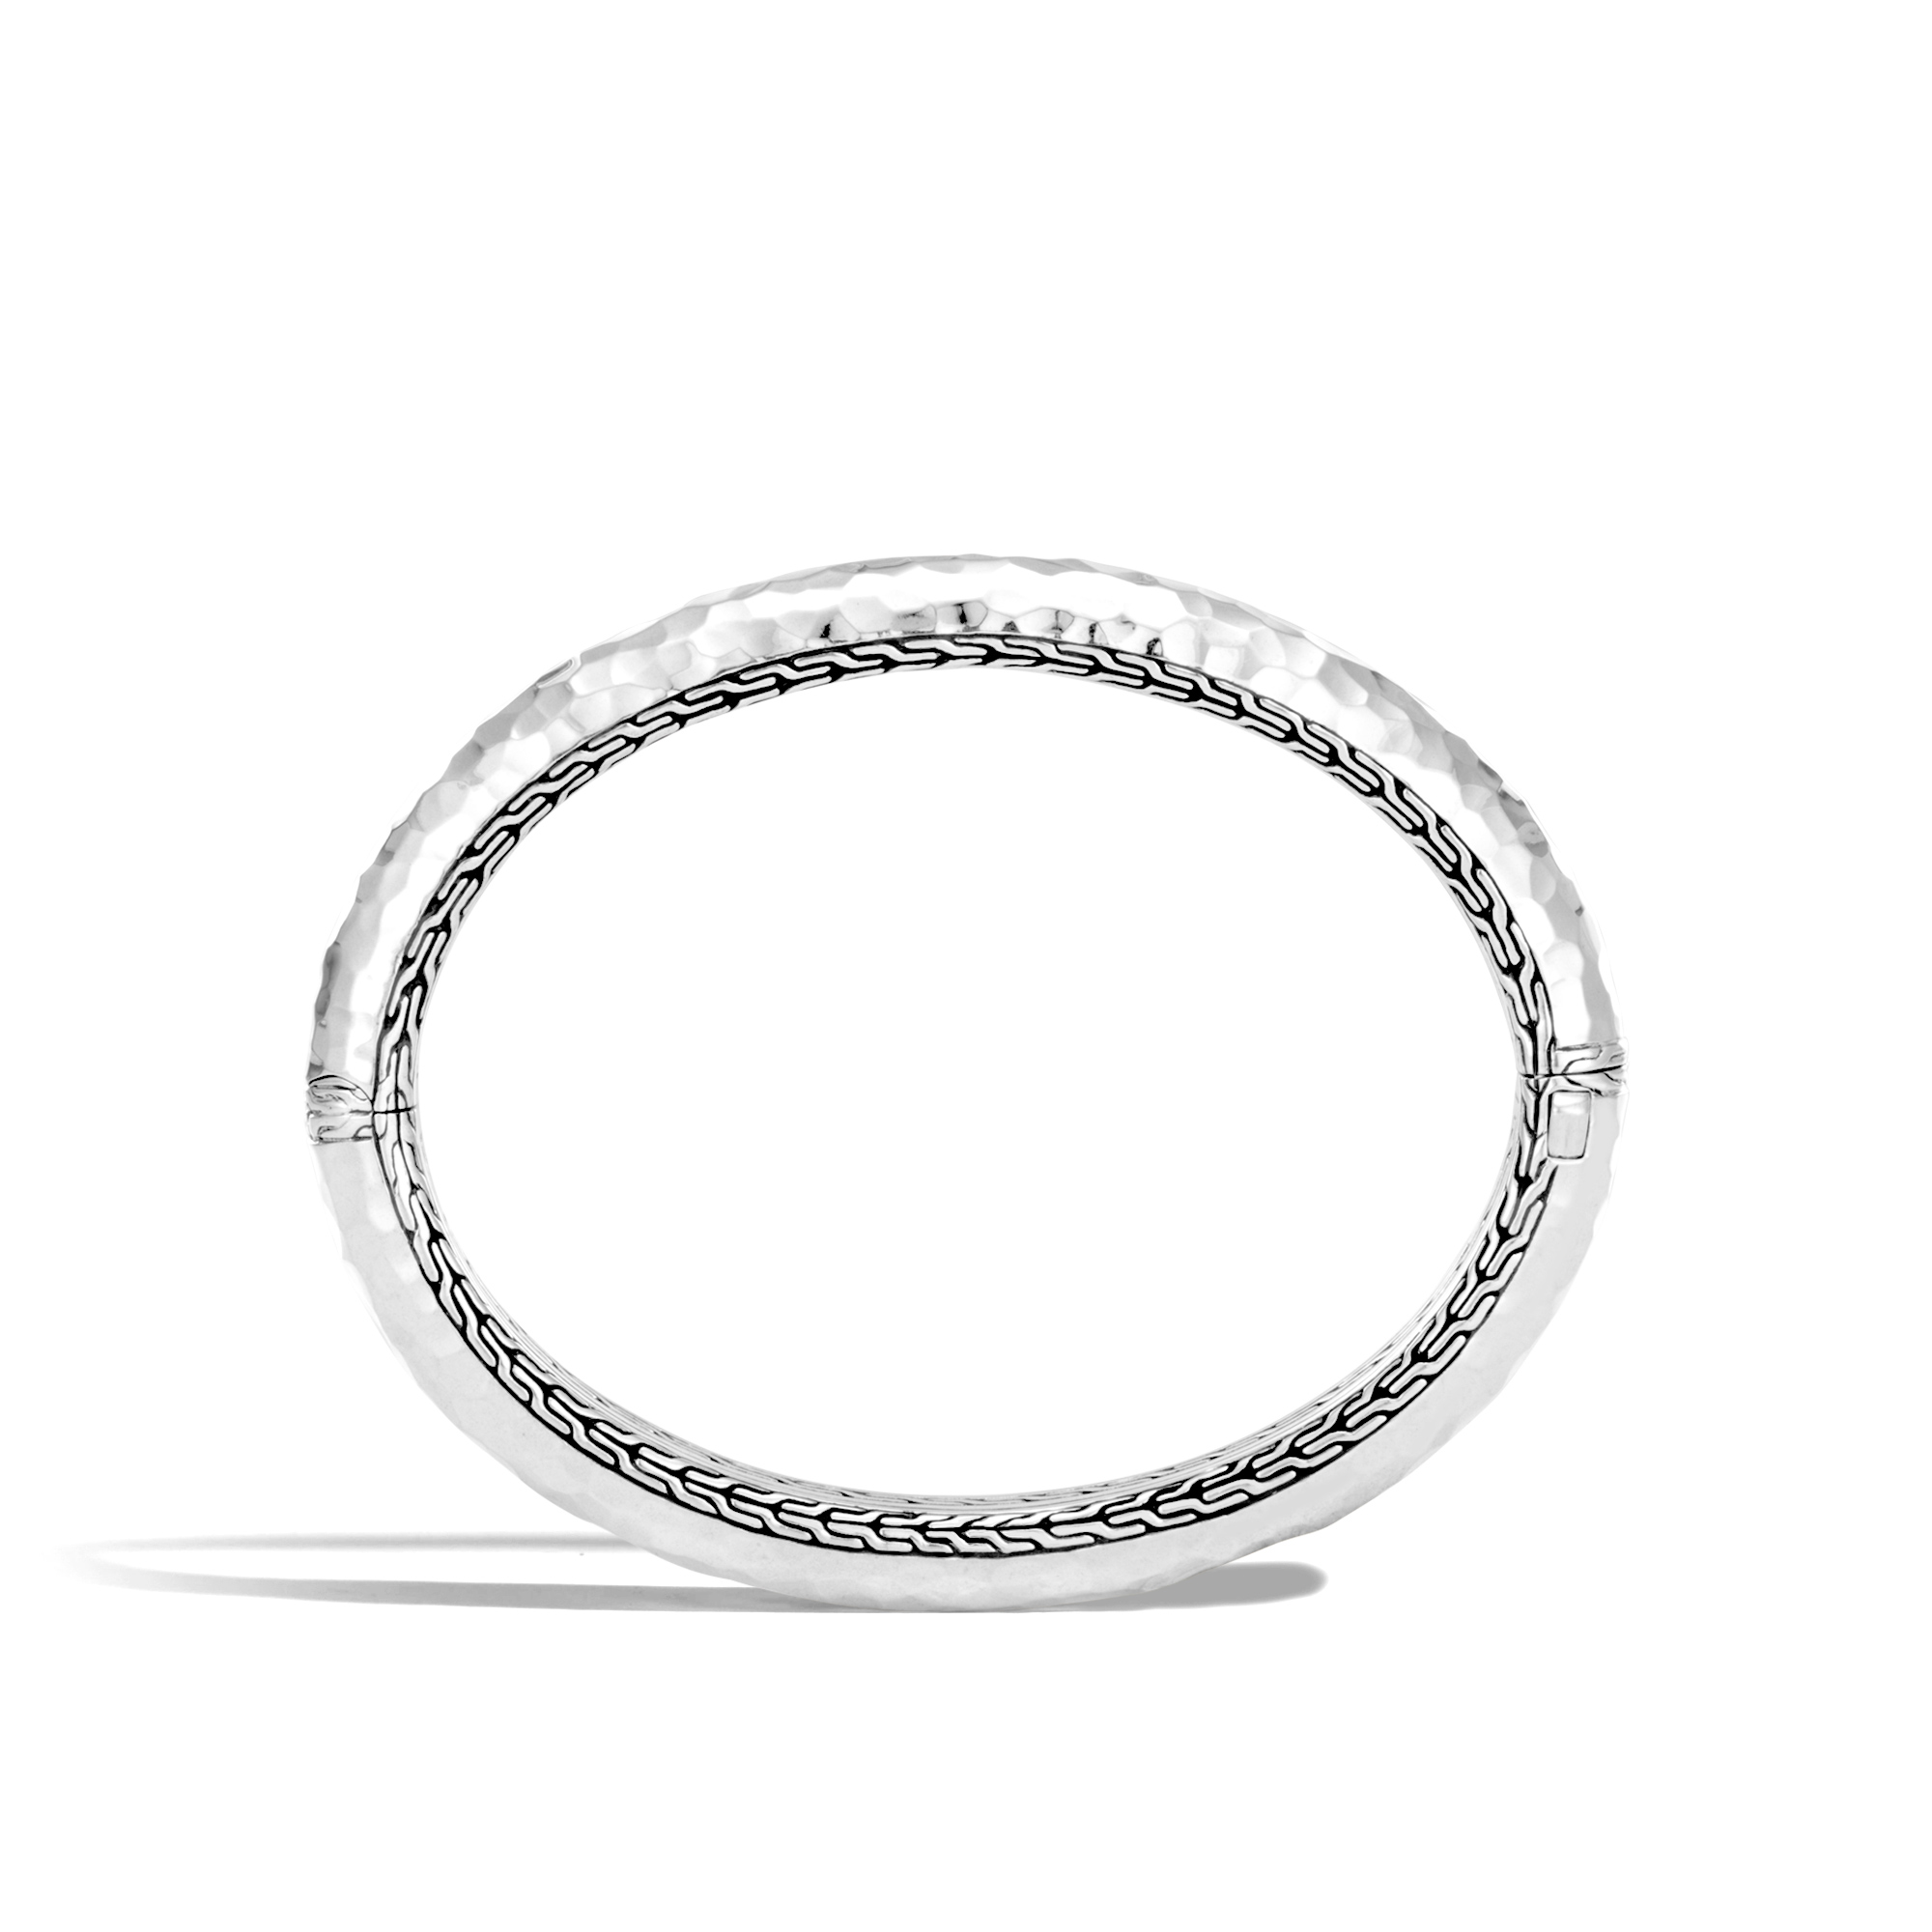 Classic Chain 8.5MM Hinged Bangle in Hammered Silver, , large